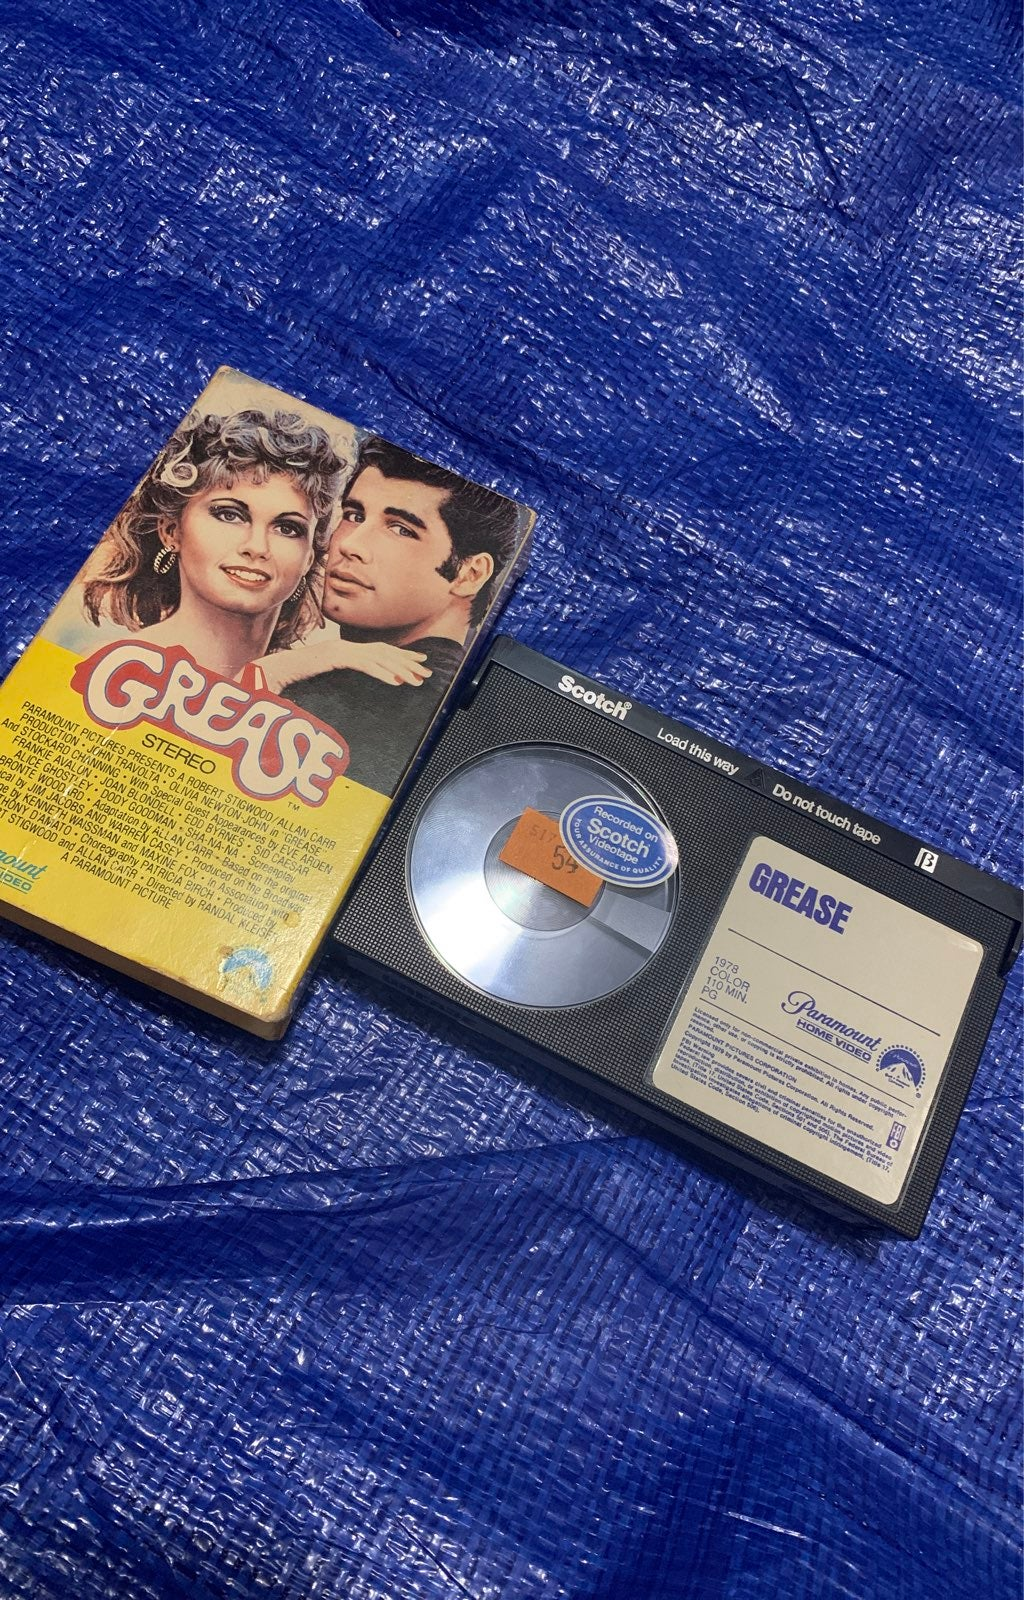 Grease (Stereo)